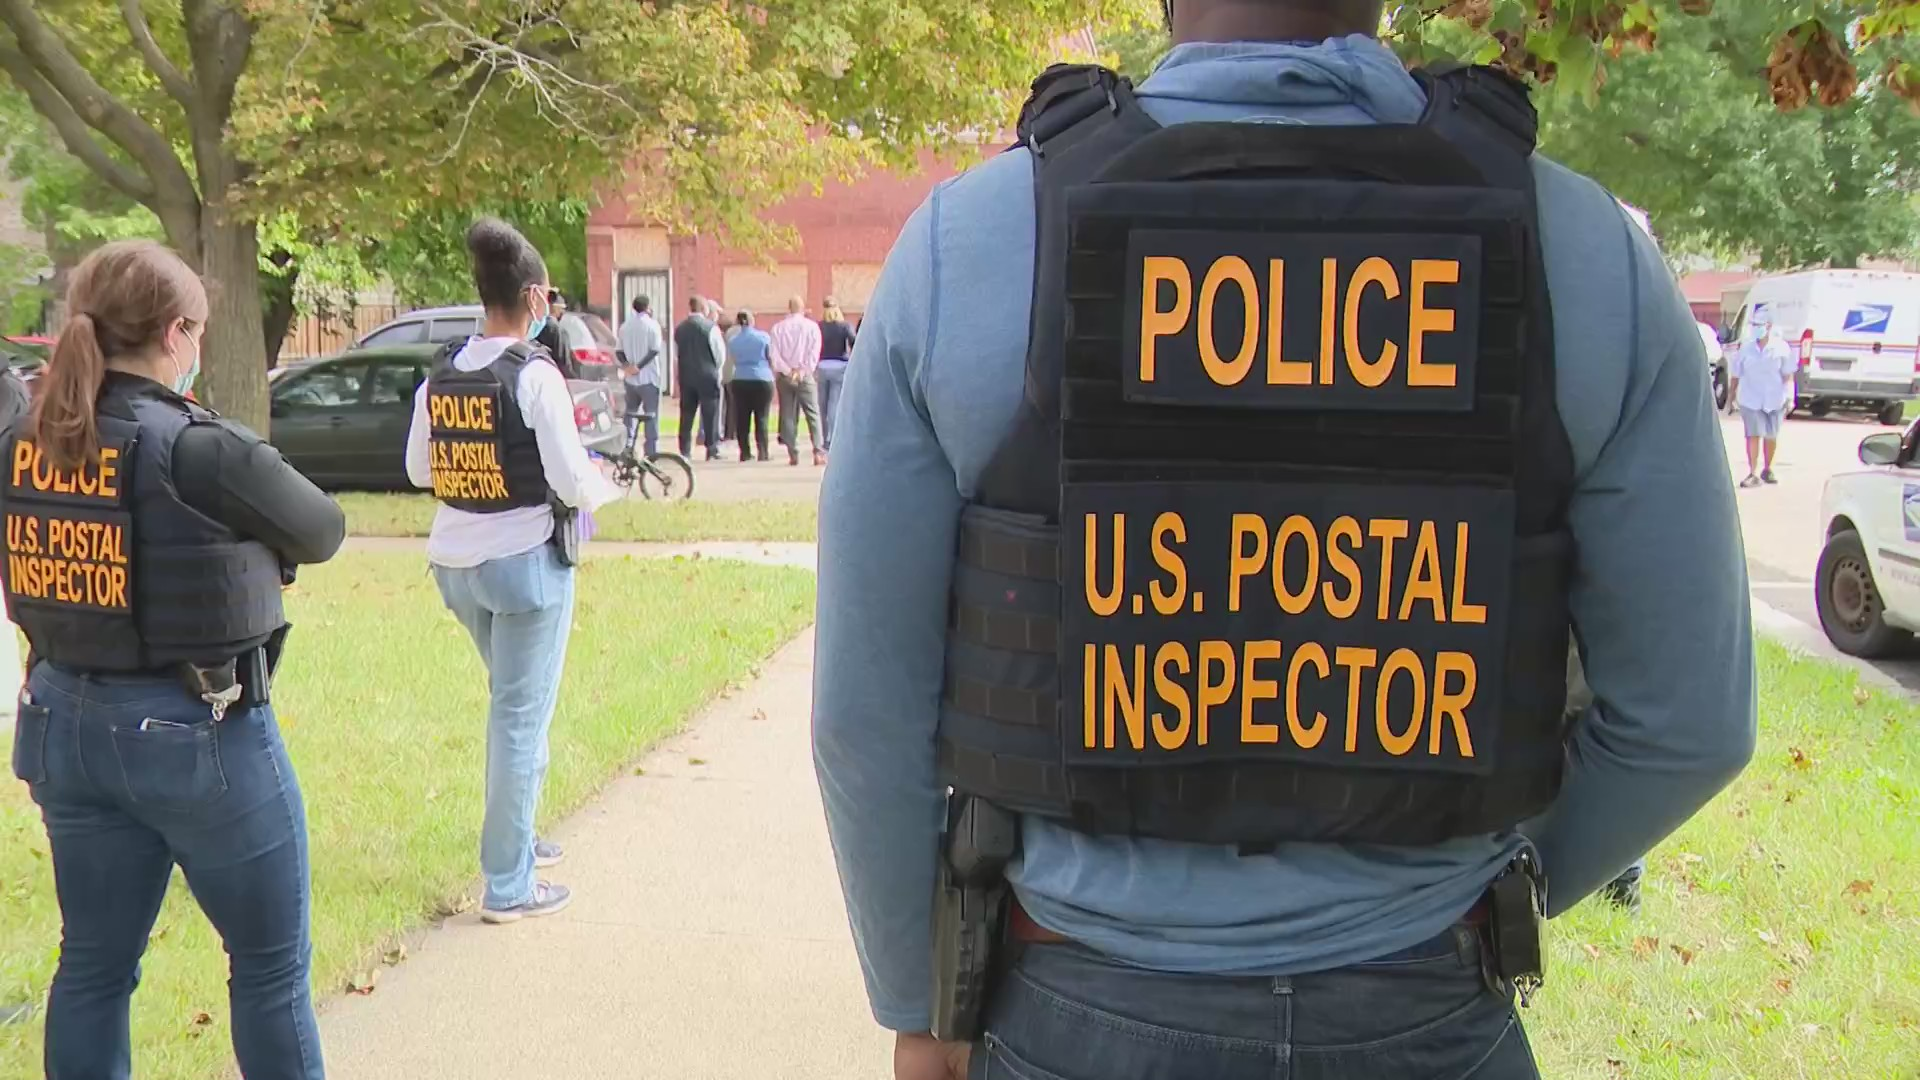 U.S. Postal Inspector is shown from the back